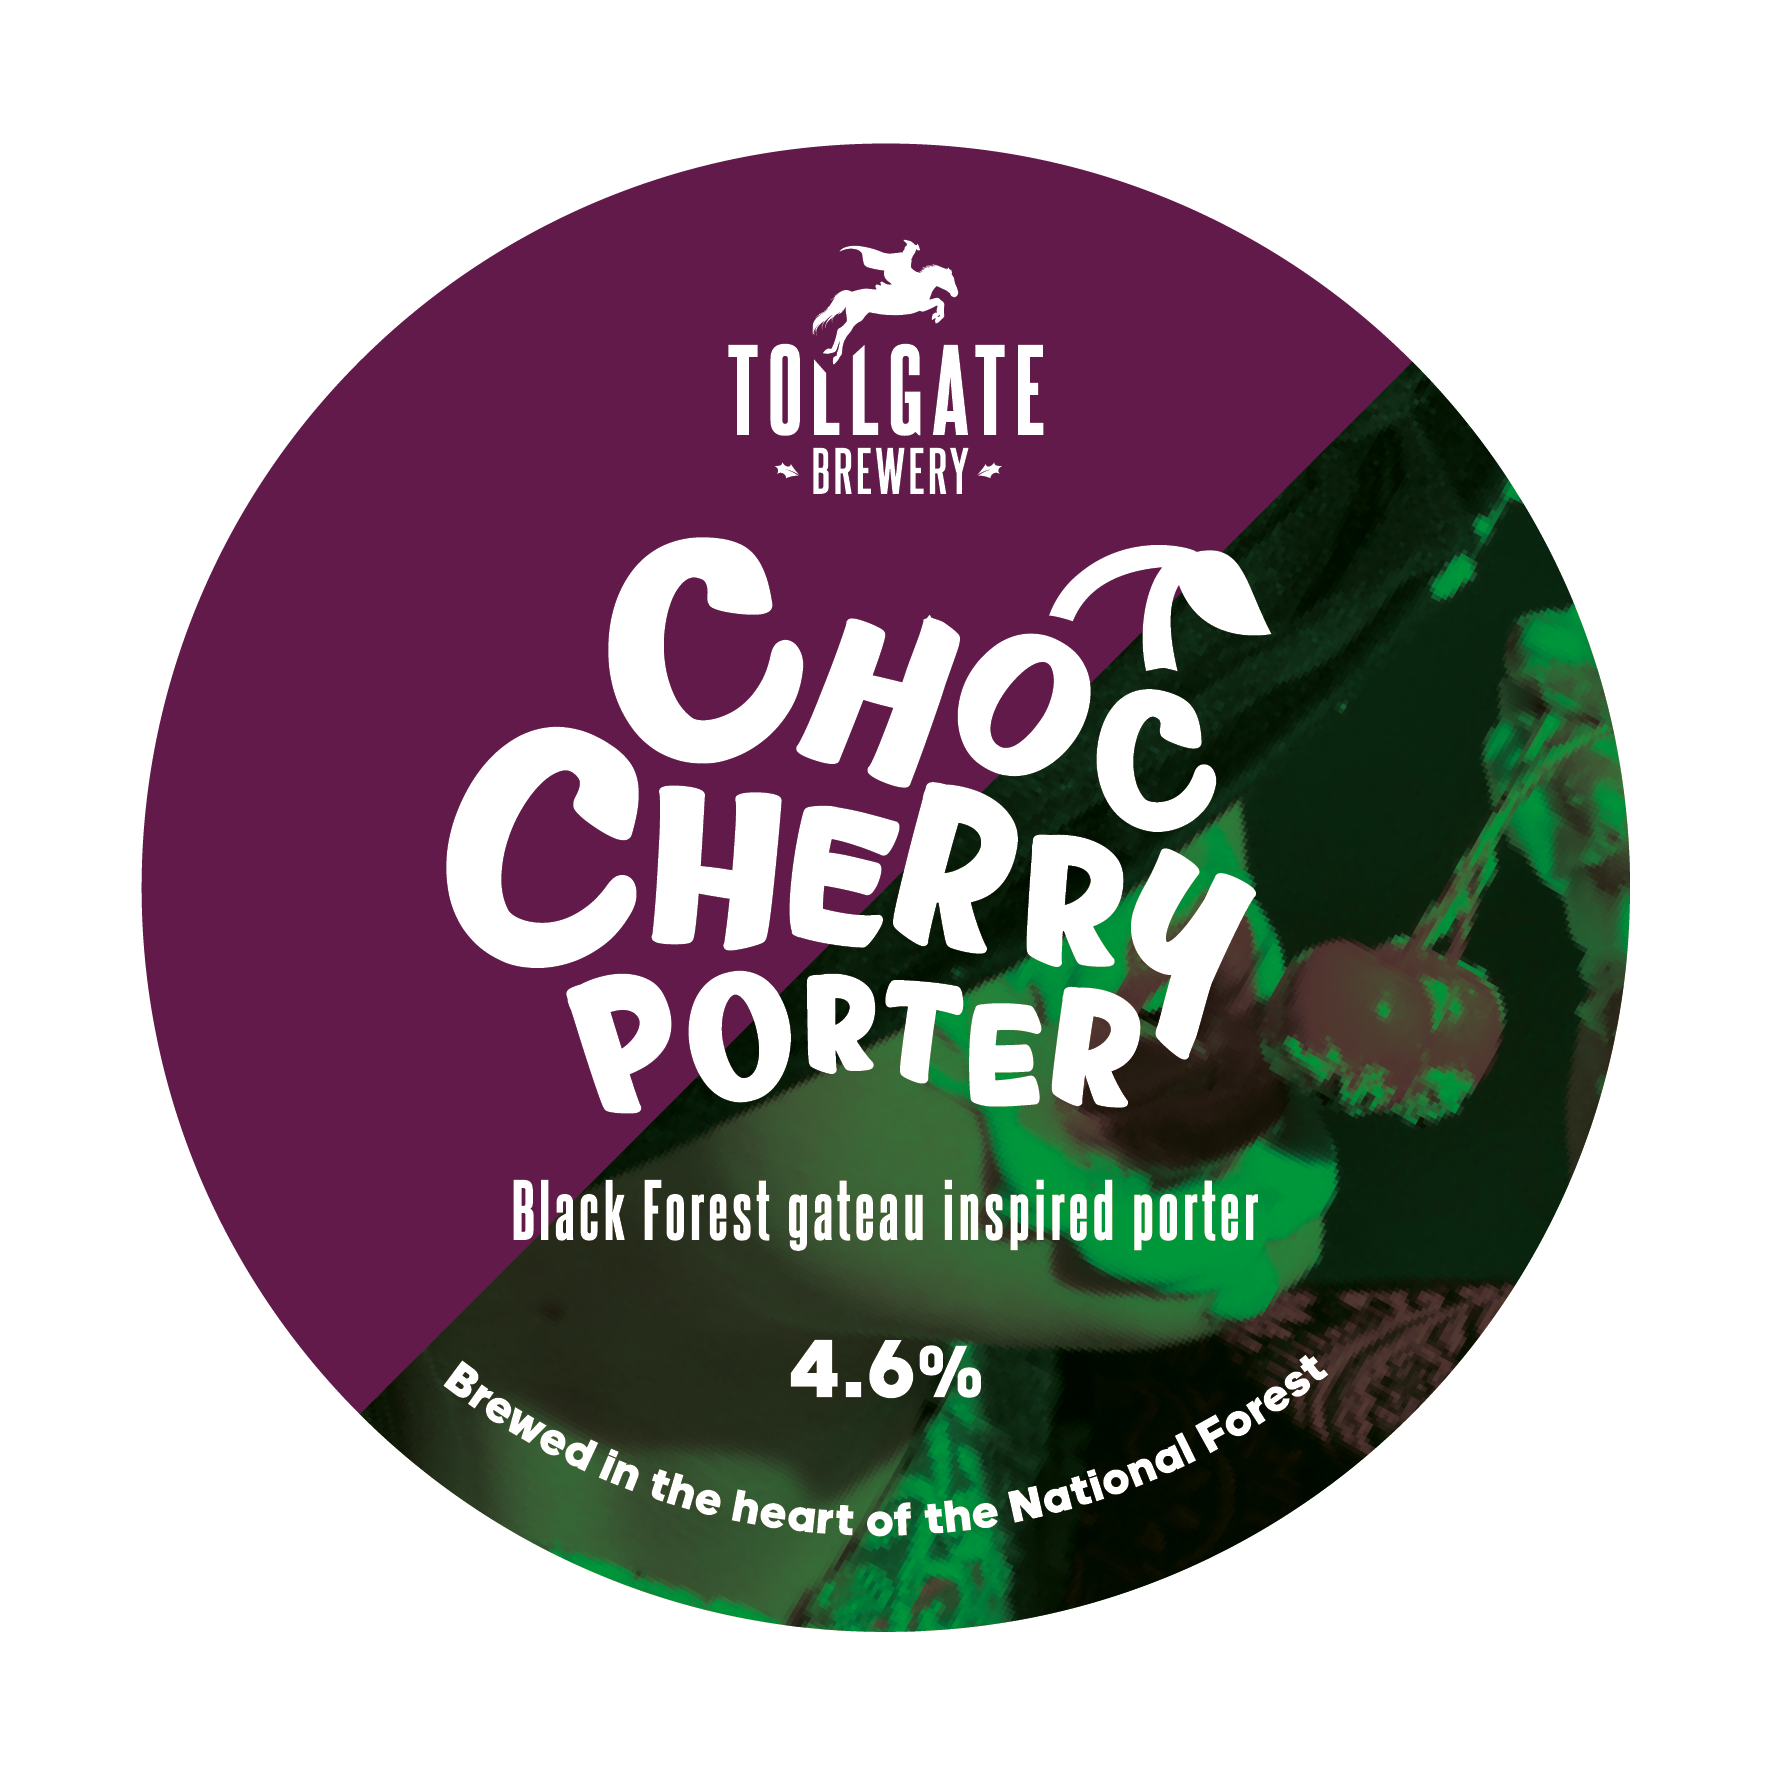 https://tollgatebrewery.co.uk/wp-content/uploads/2020/04/Tollgate_Clips_Ashby5.png